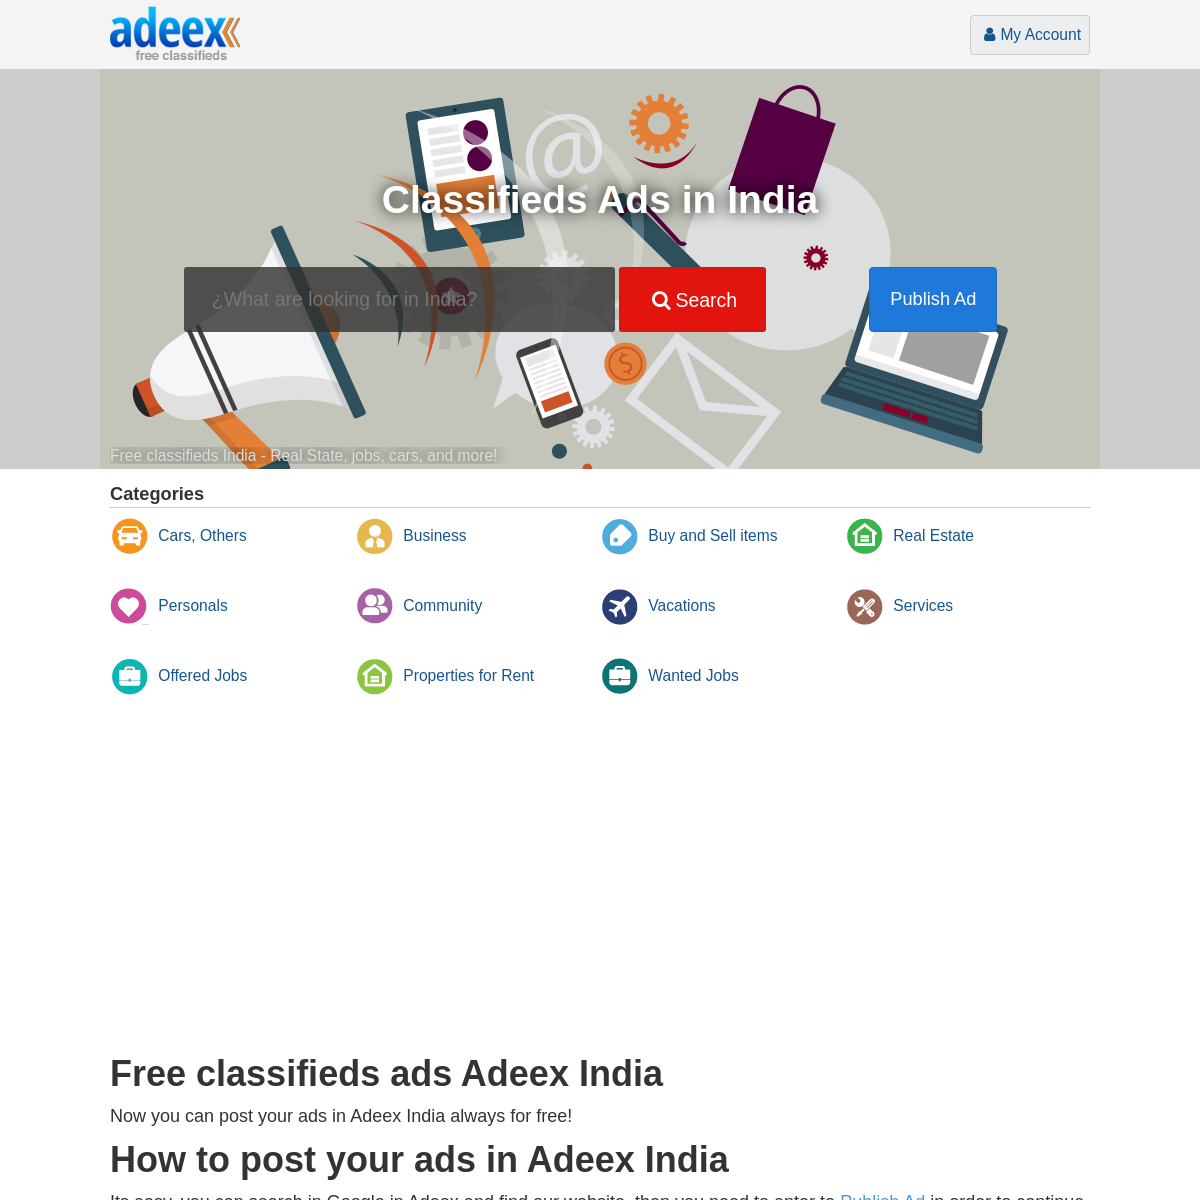 Ads Classifieds in India. Free ads Adeex.